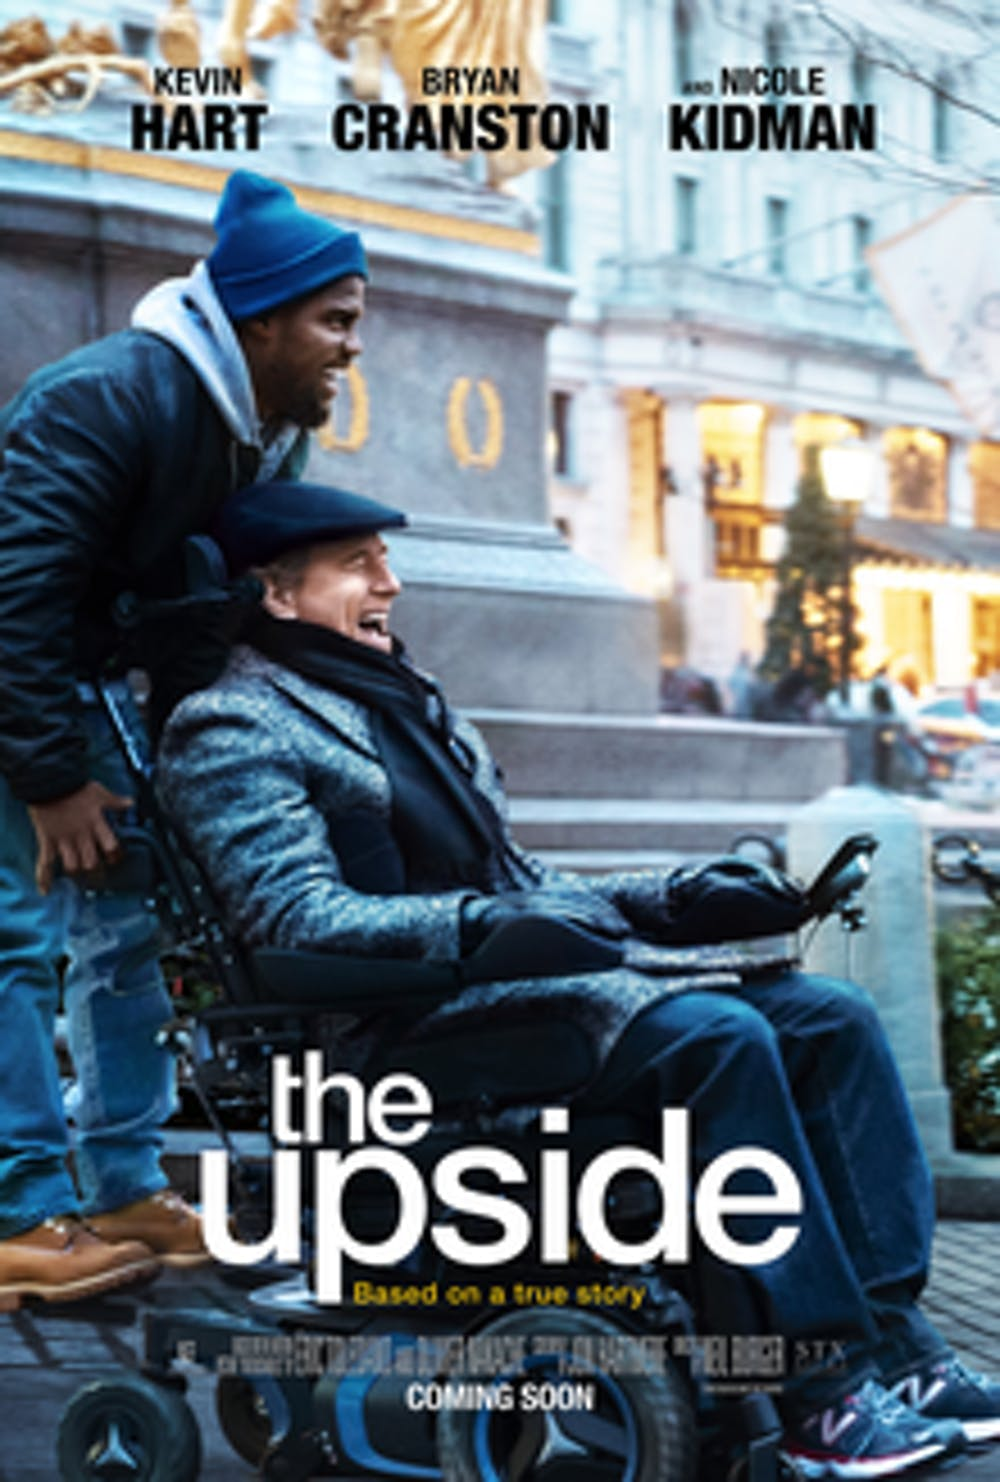 'The Upside' has its ups and downs